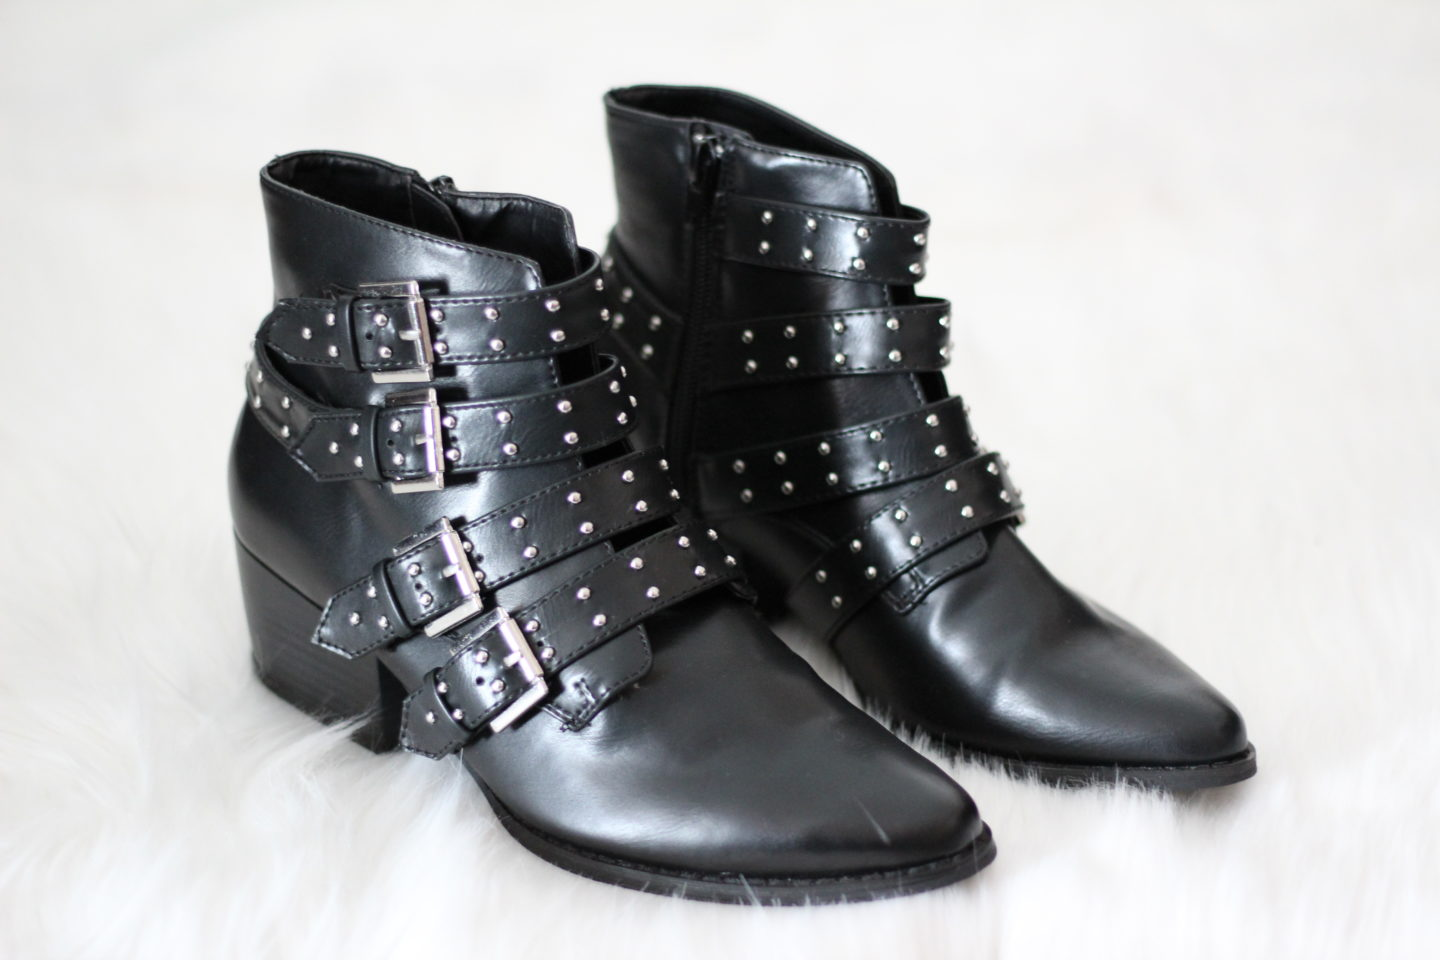 Forever 21 Boots - Chelsea de Castro - Fall and Winter Booties